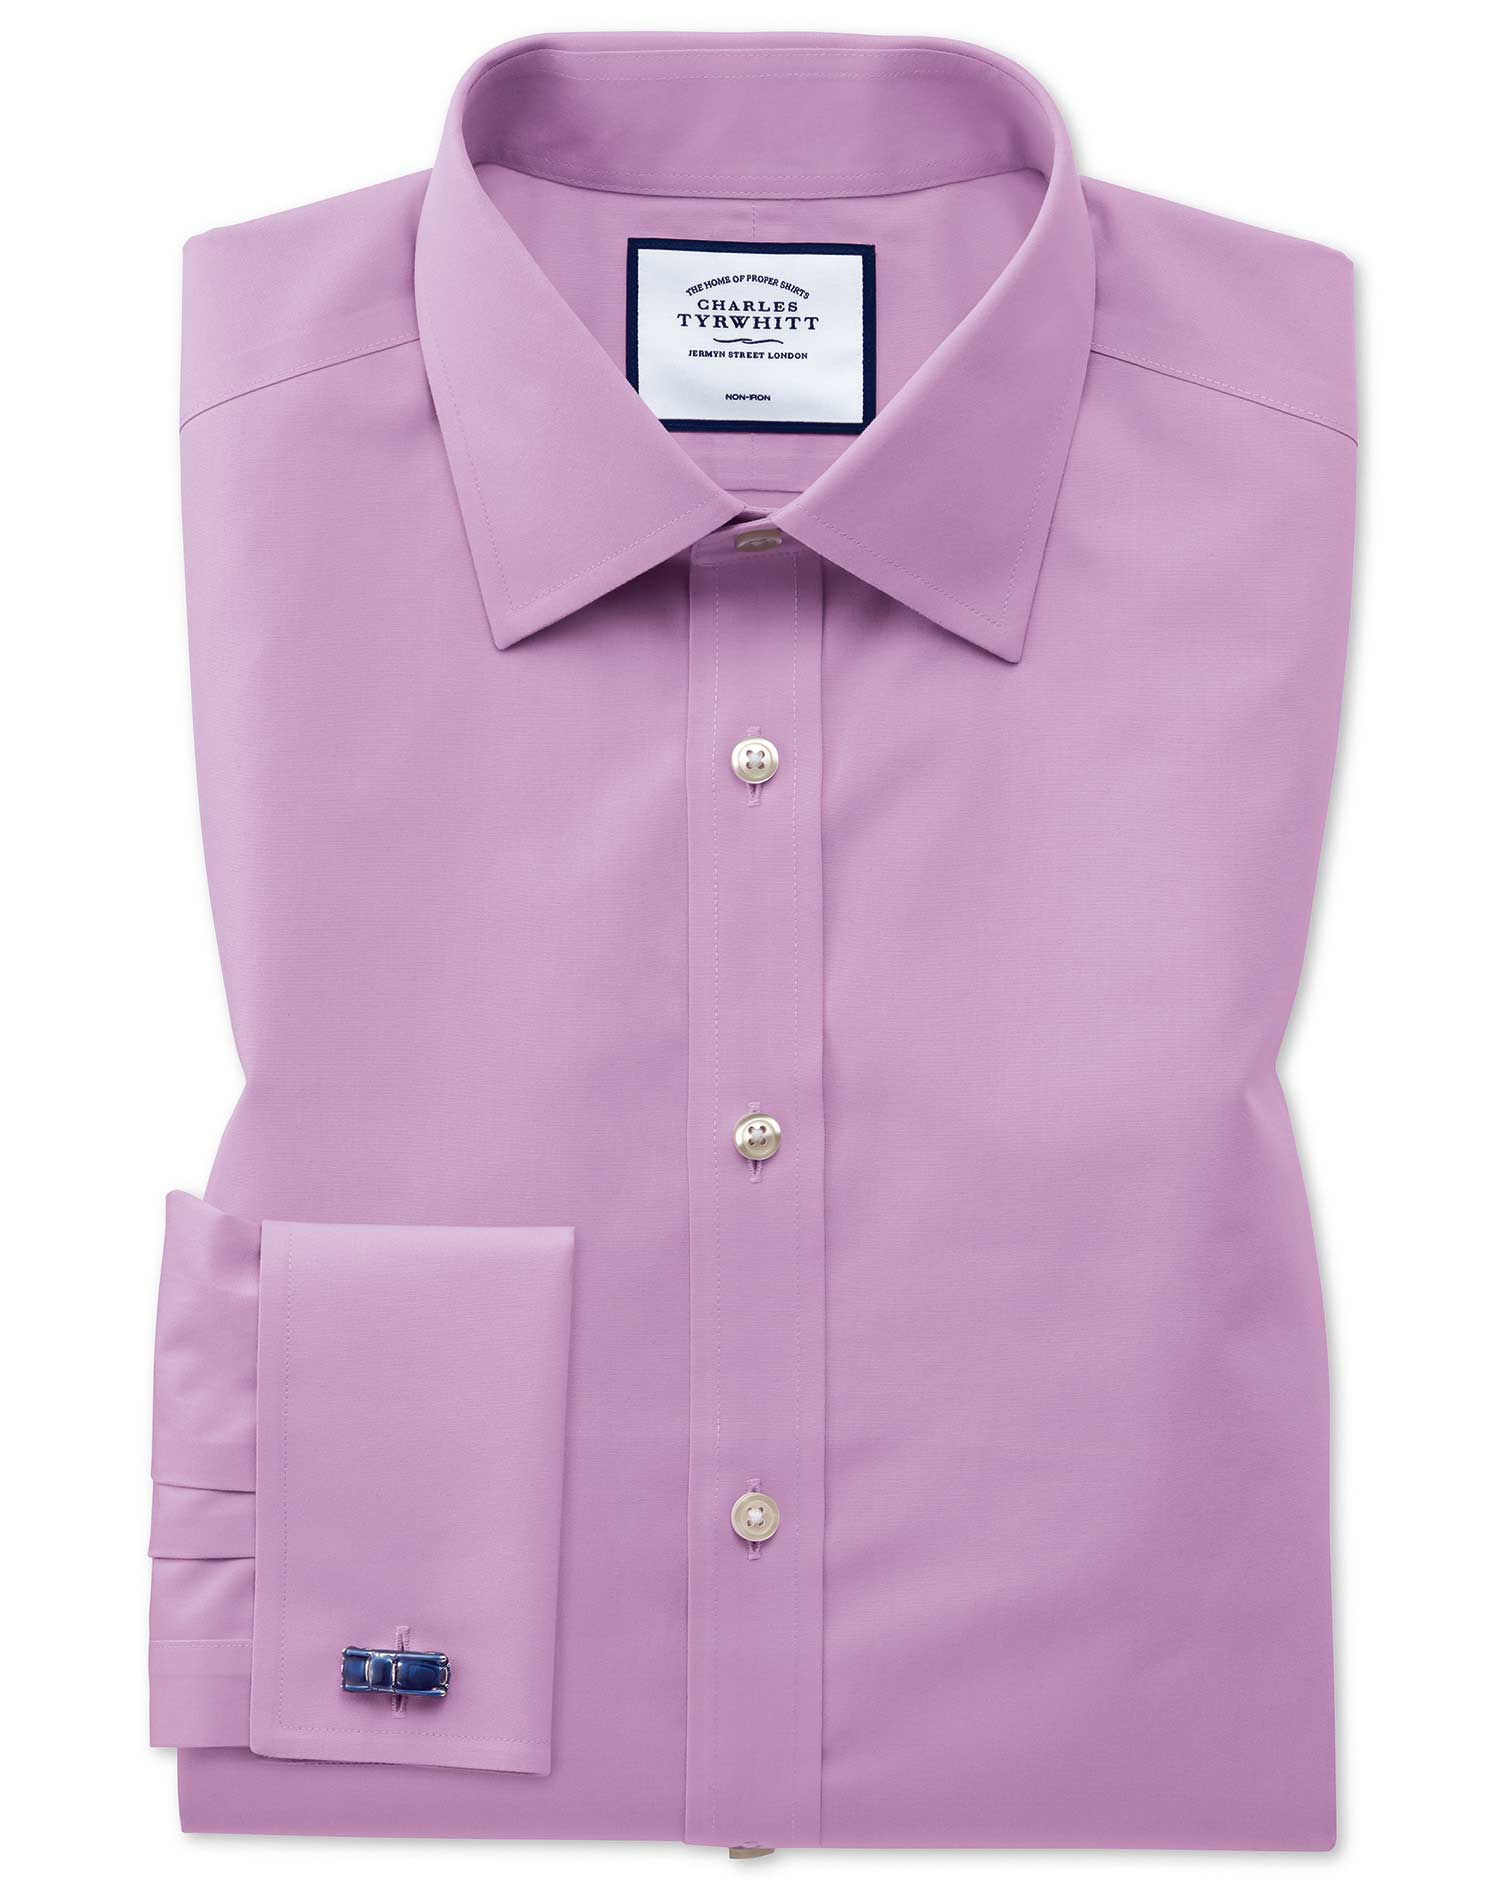 Slim Fit Non-Iron Violet Poplin Cotton Formal Shirt Single Cuff Size 16/32 by Charles Tyrwhitt